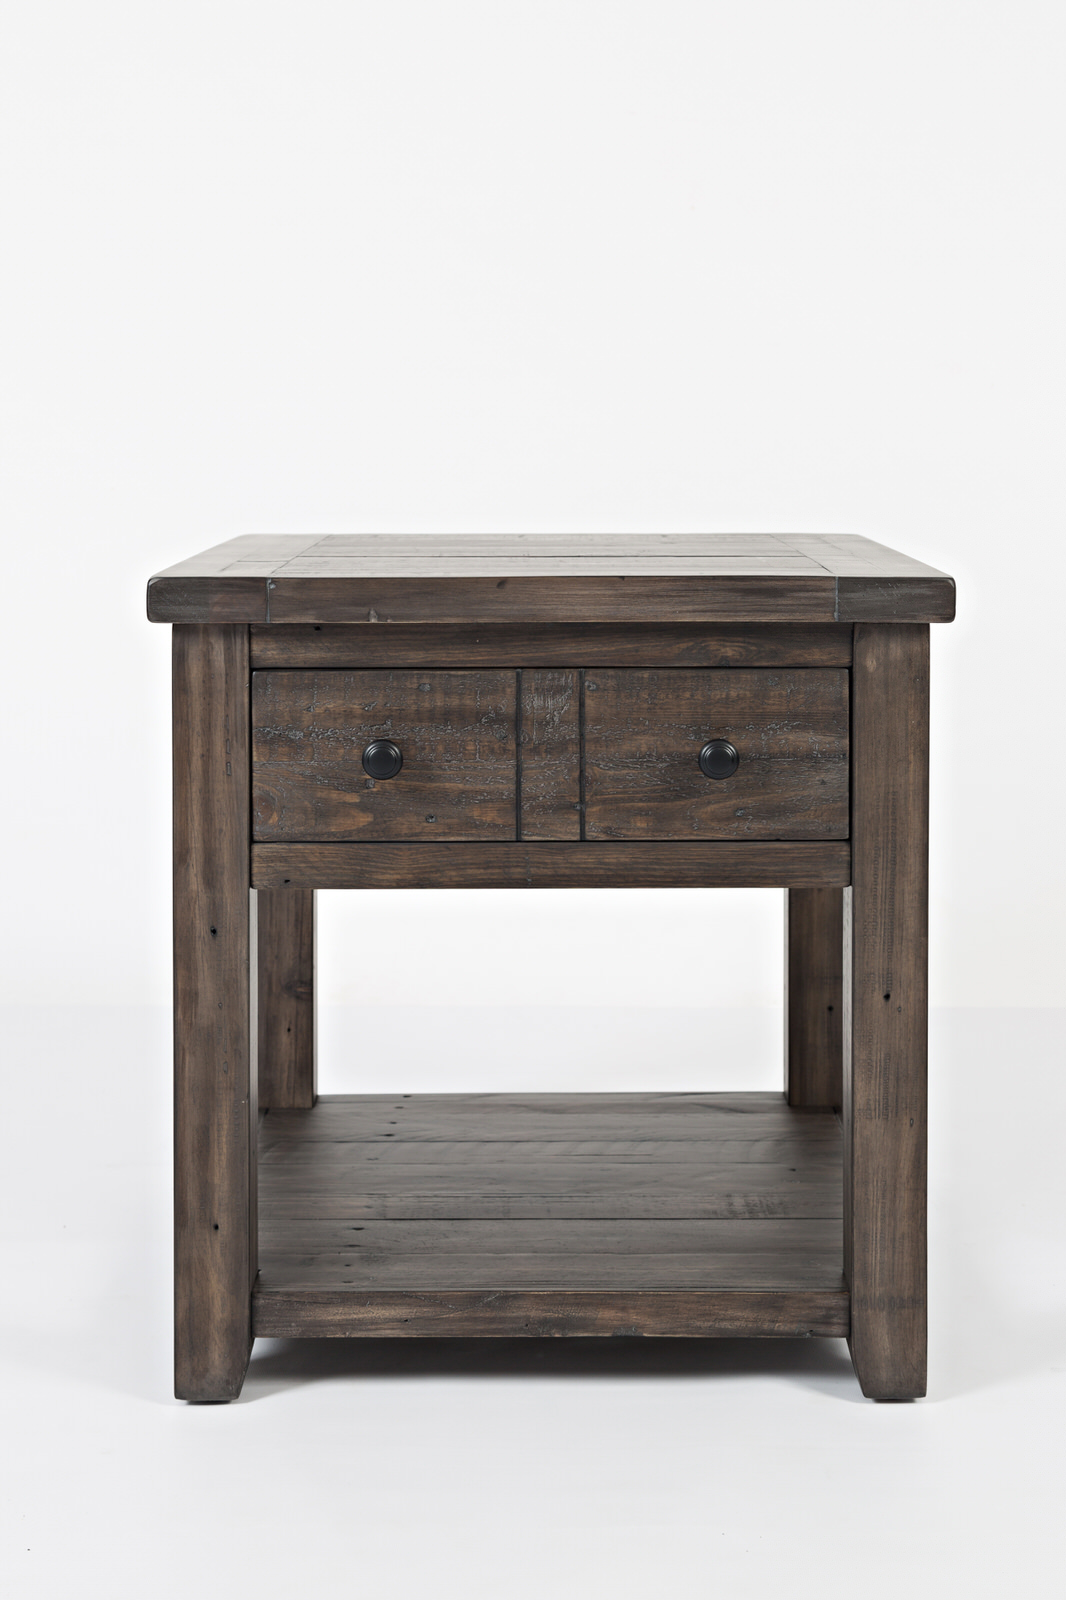 Miraculous Madison County Barnwood End Table By Jofran Furniture Interior Design Ideas Gentotryabchikinfo